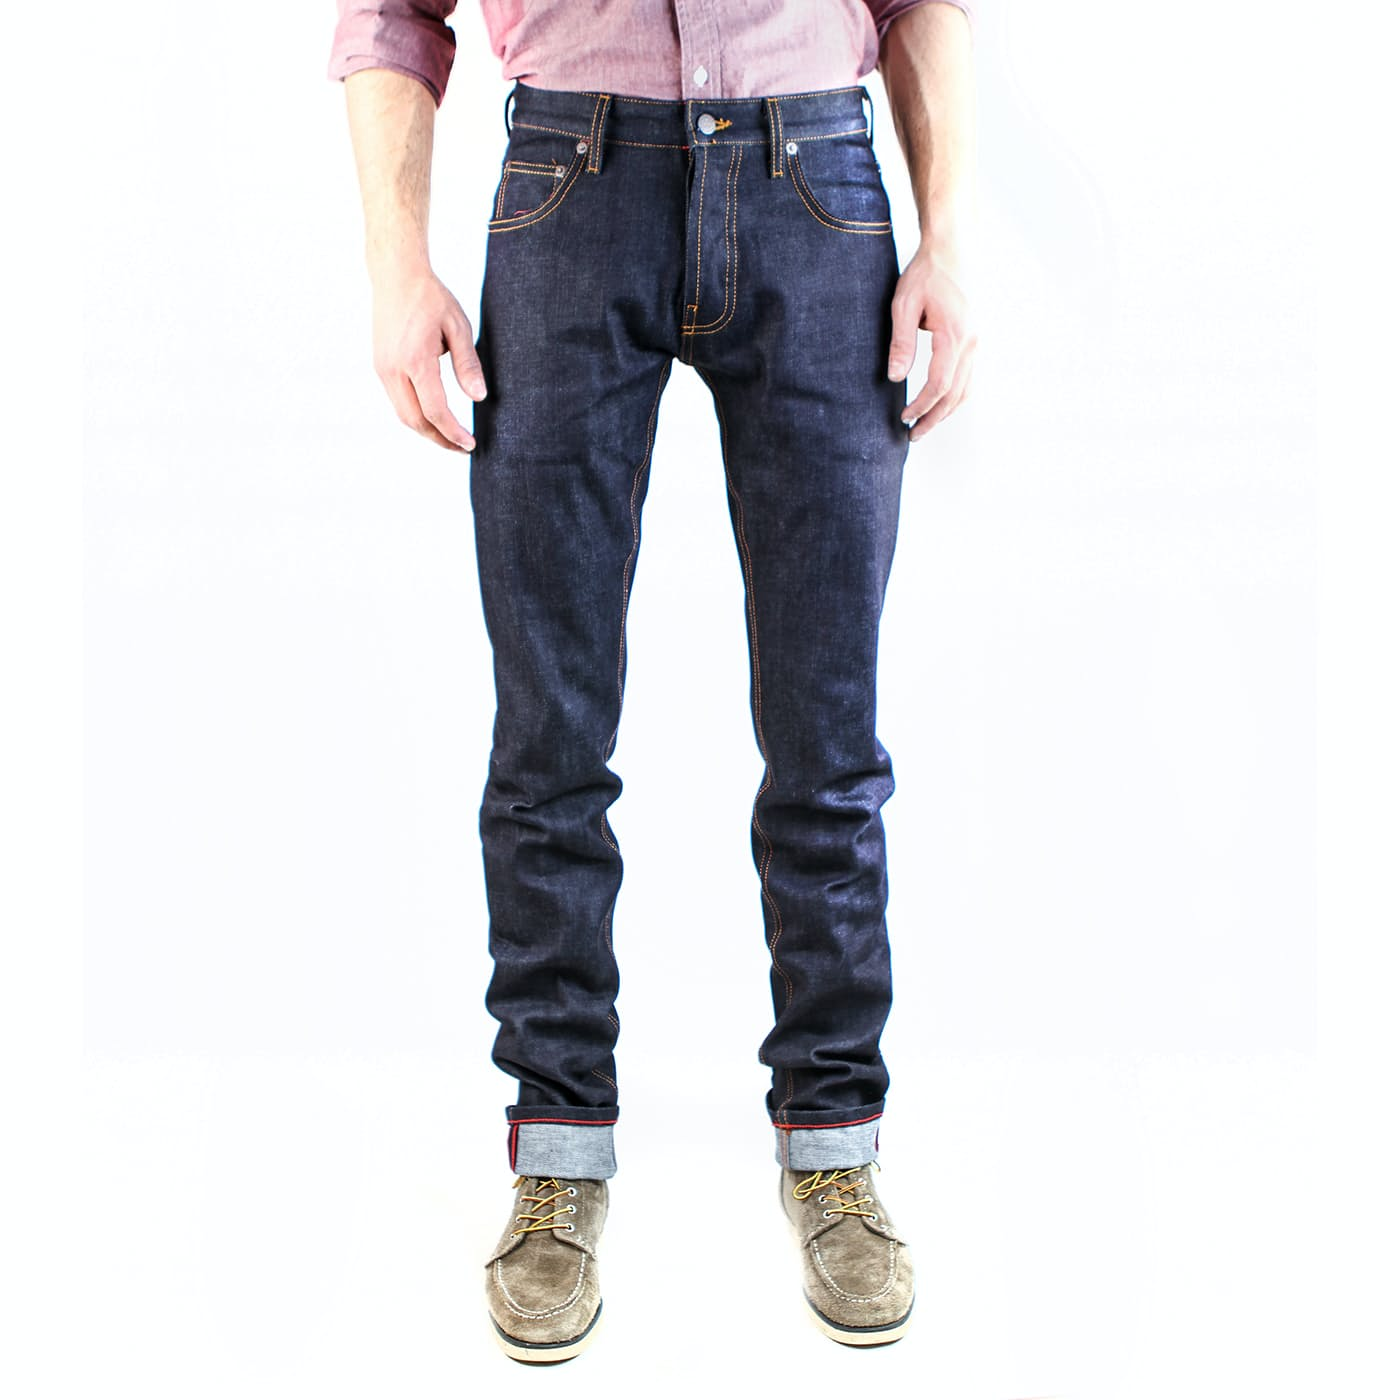 Jnxedtfqvk taylor stitch brenham slim fit 13.5oz 0 original